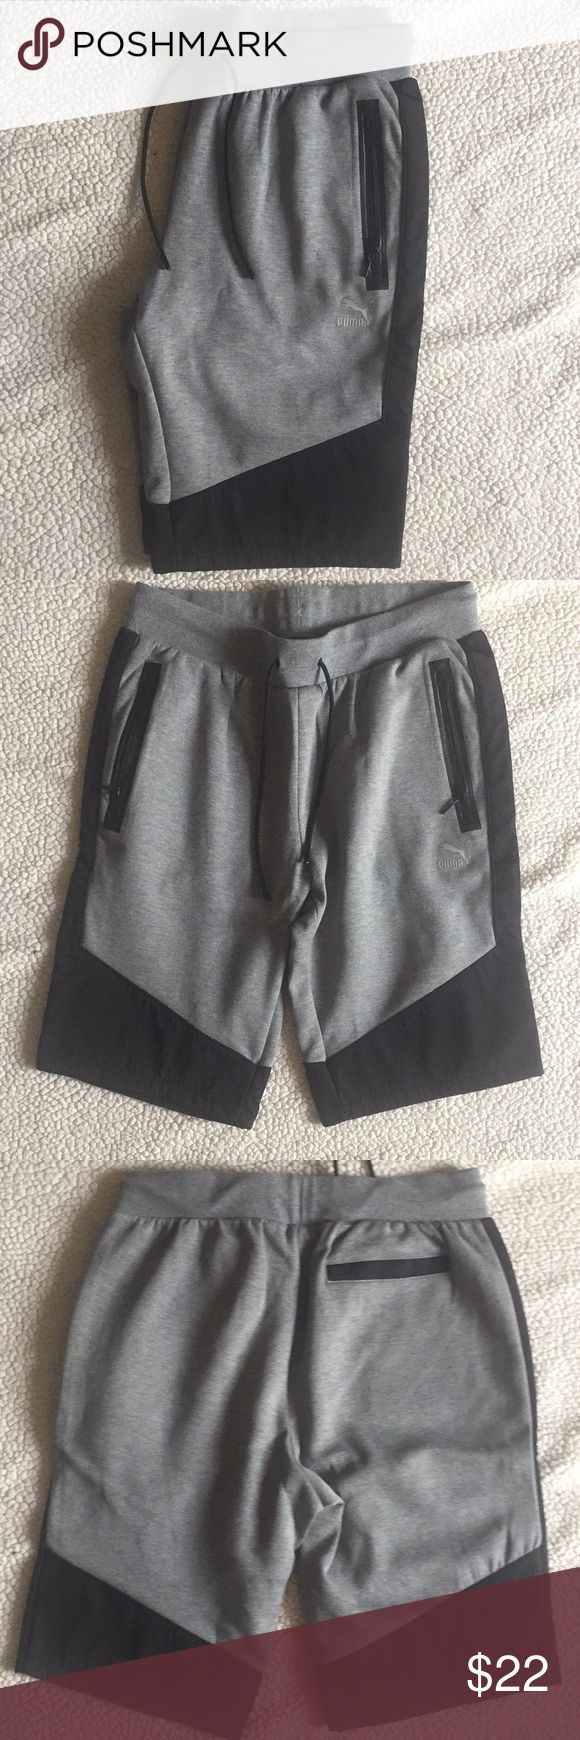 Mens shorts ⭐️SALE⭐️Puma shorts, size XL, 77% cotton 23%polyester, New without tags Puma Shorts